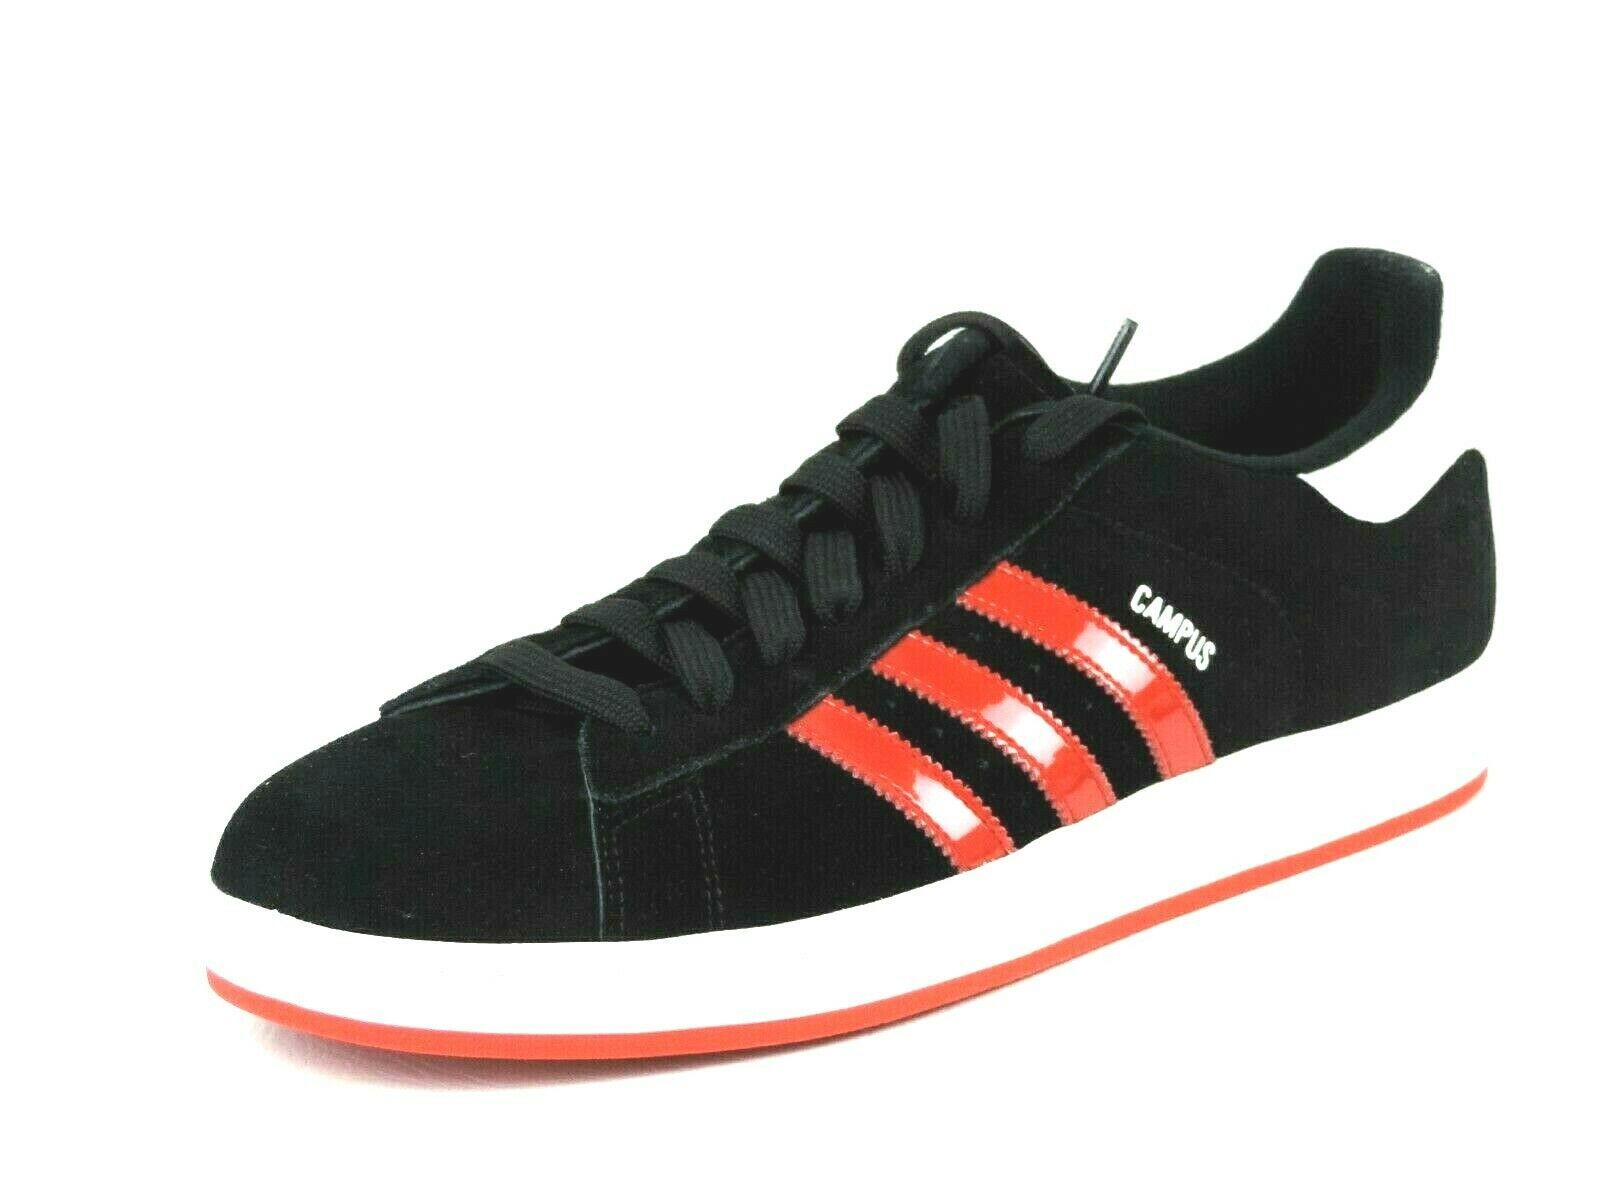 Adidas Campus II 018372 Mens Shoes Black Leather Casual Sneakers Rare DS